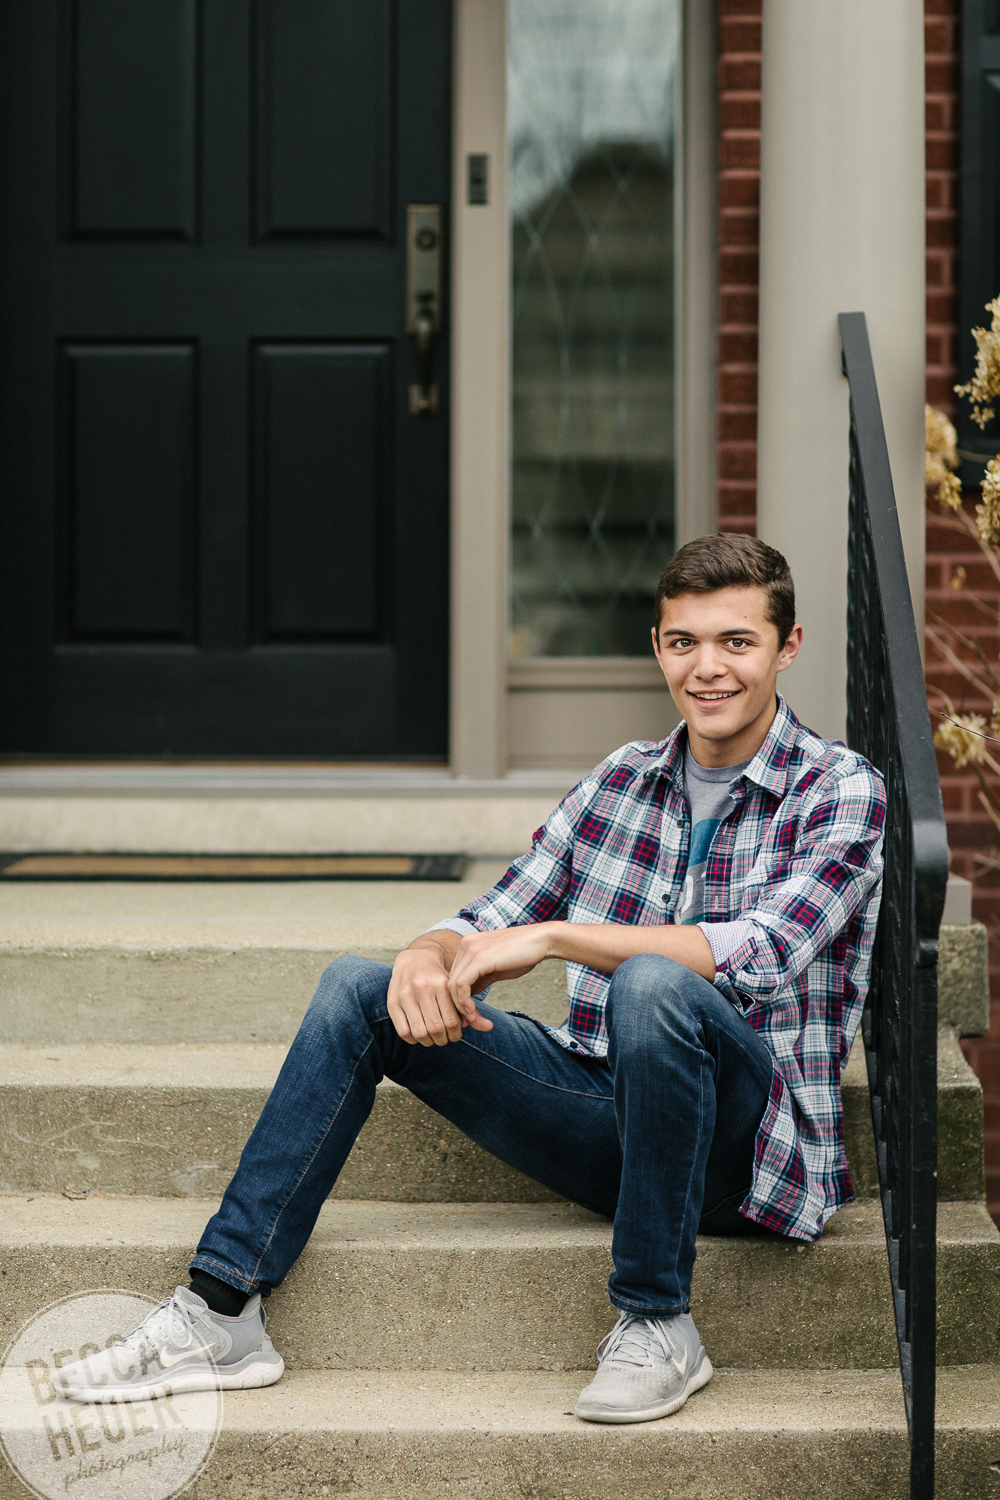 Senior Photos_blogo-032.jpg